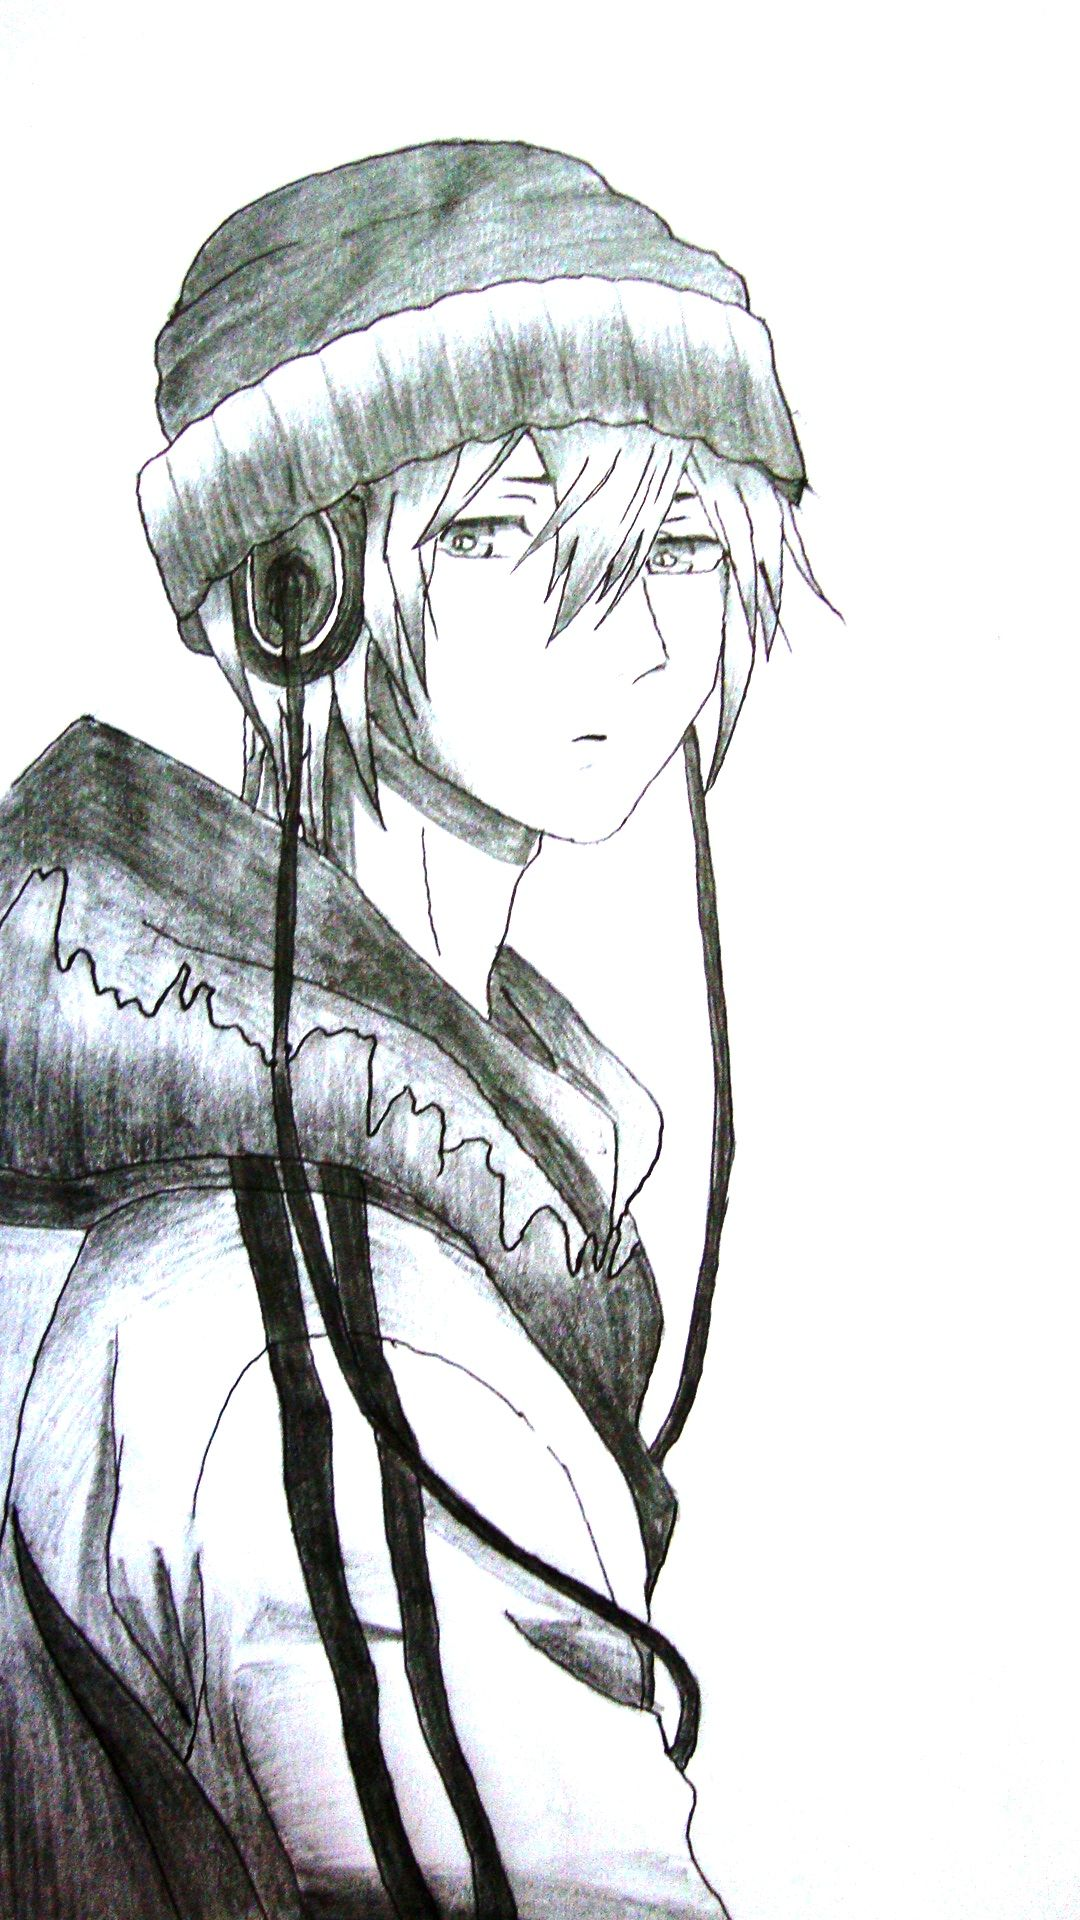 Anime headphones boy pencil sketch boy sketch hand art anime guys anime art